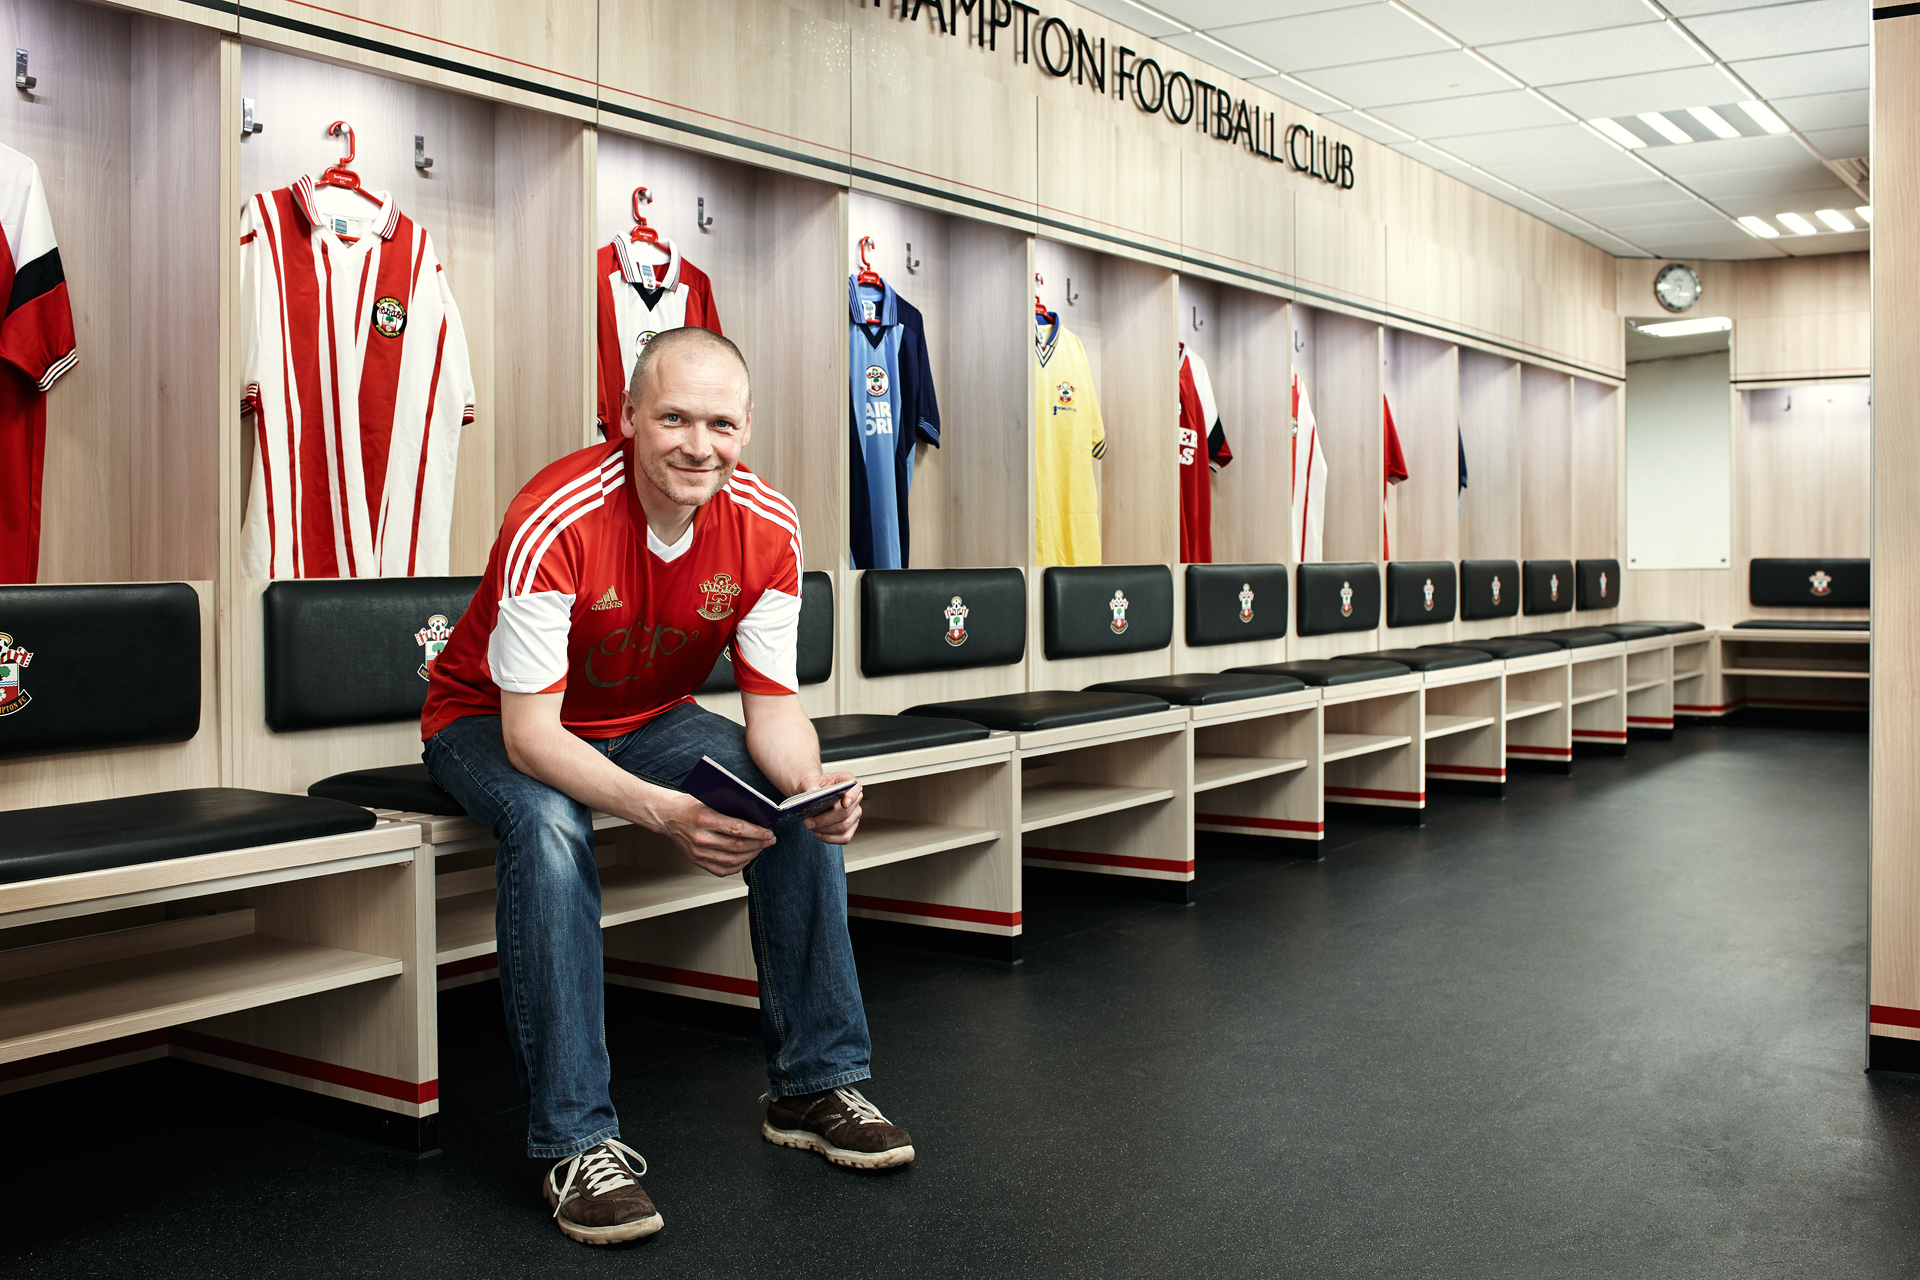 Southampton_ChangingRooms